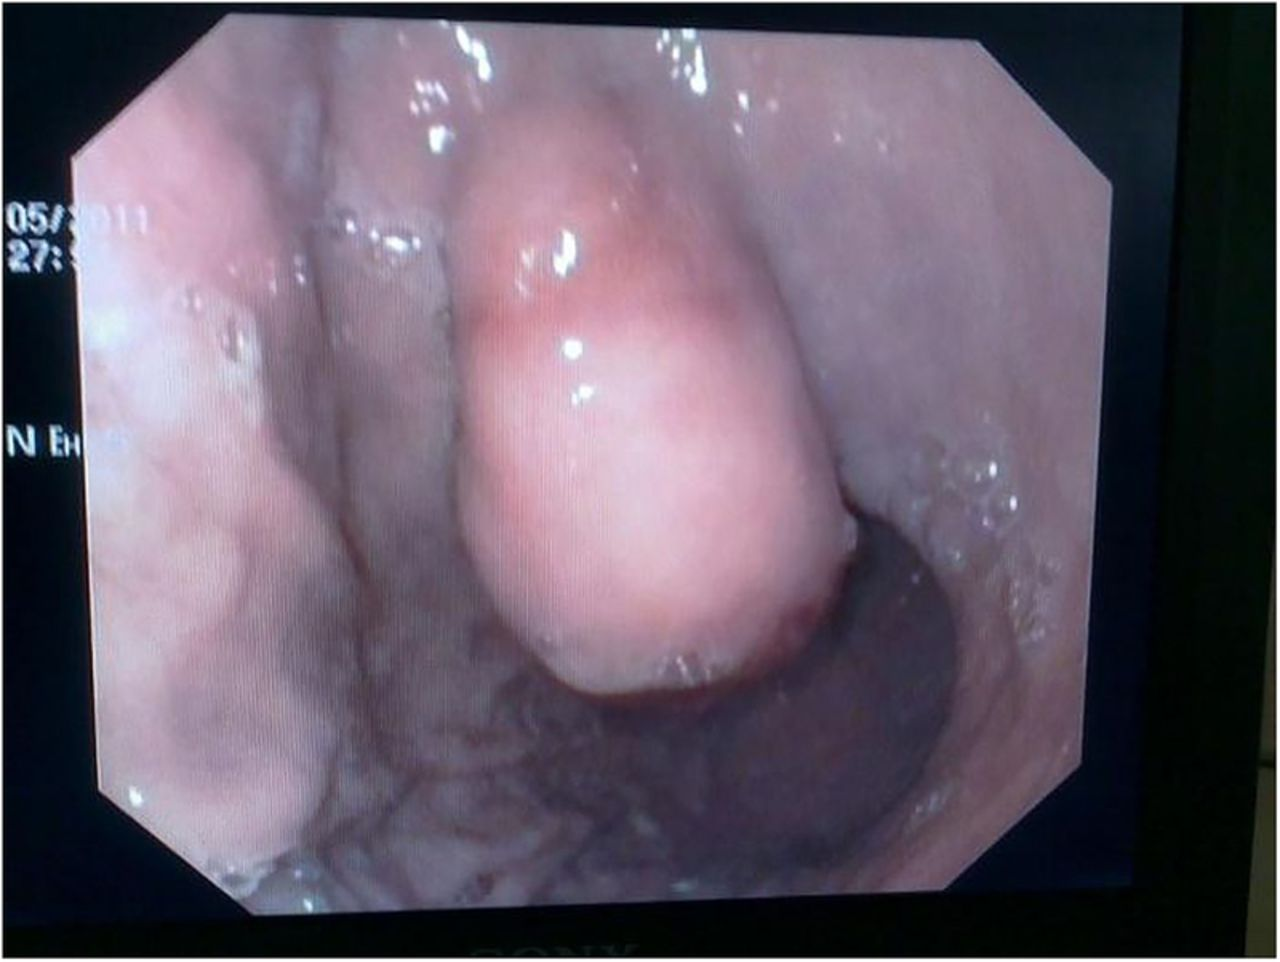 Gastric lipoma: an unusual cause of dyspeptic symptoms | BMJ Case